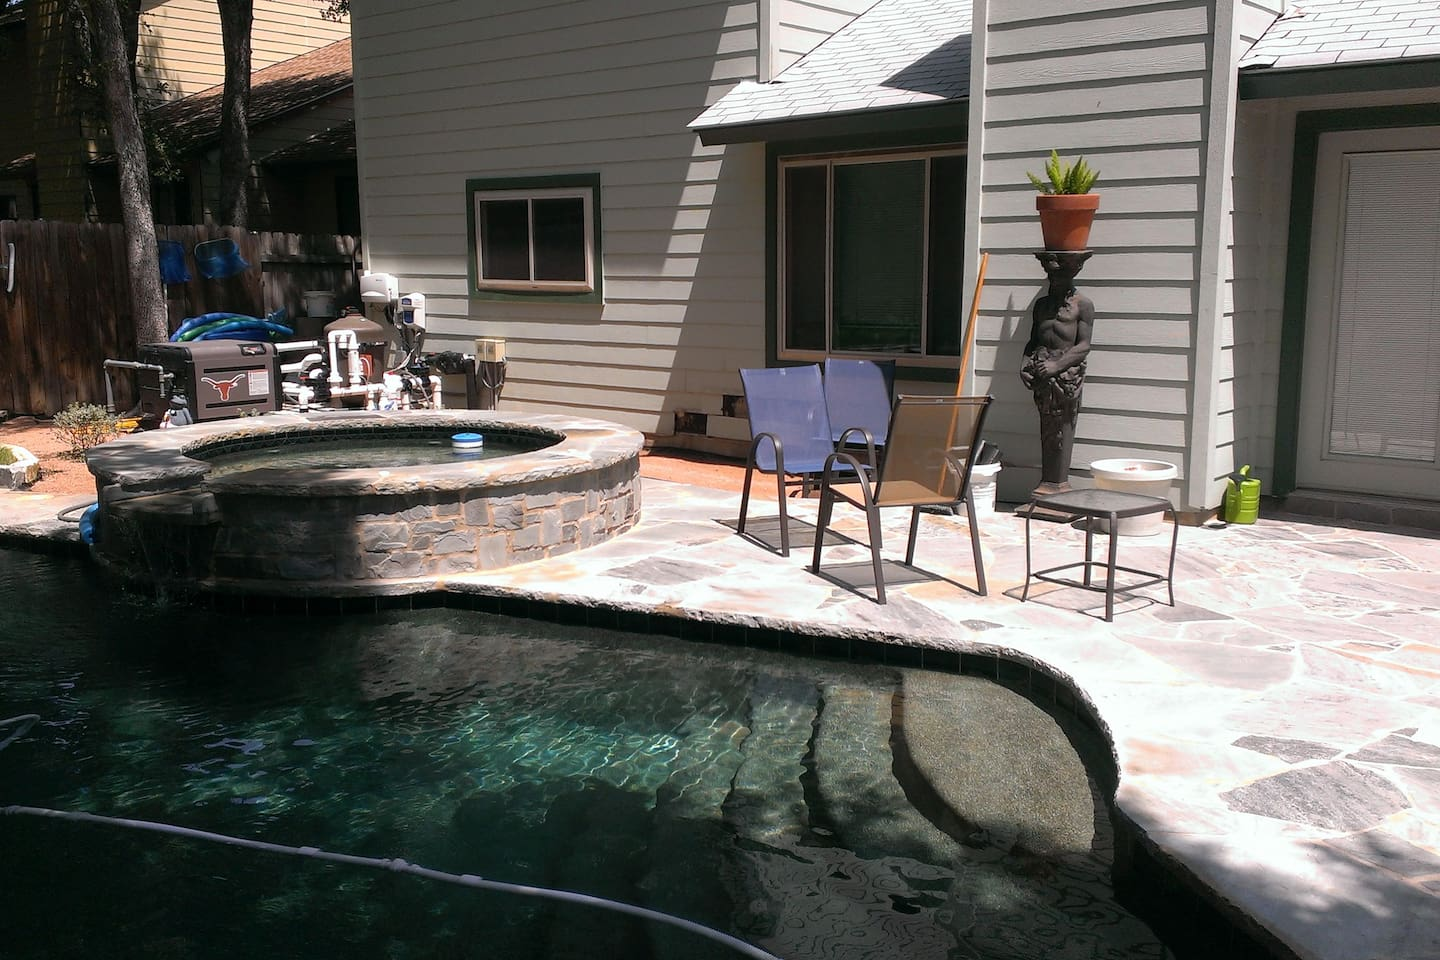 Pool and hot tub in the back yard